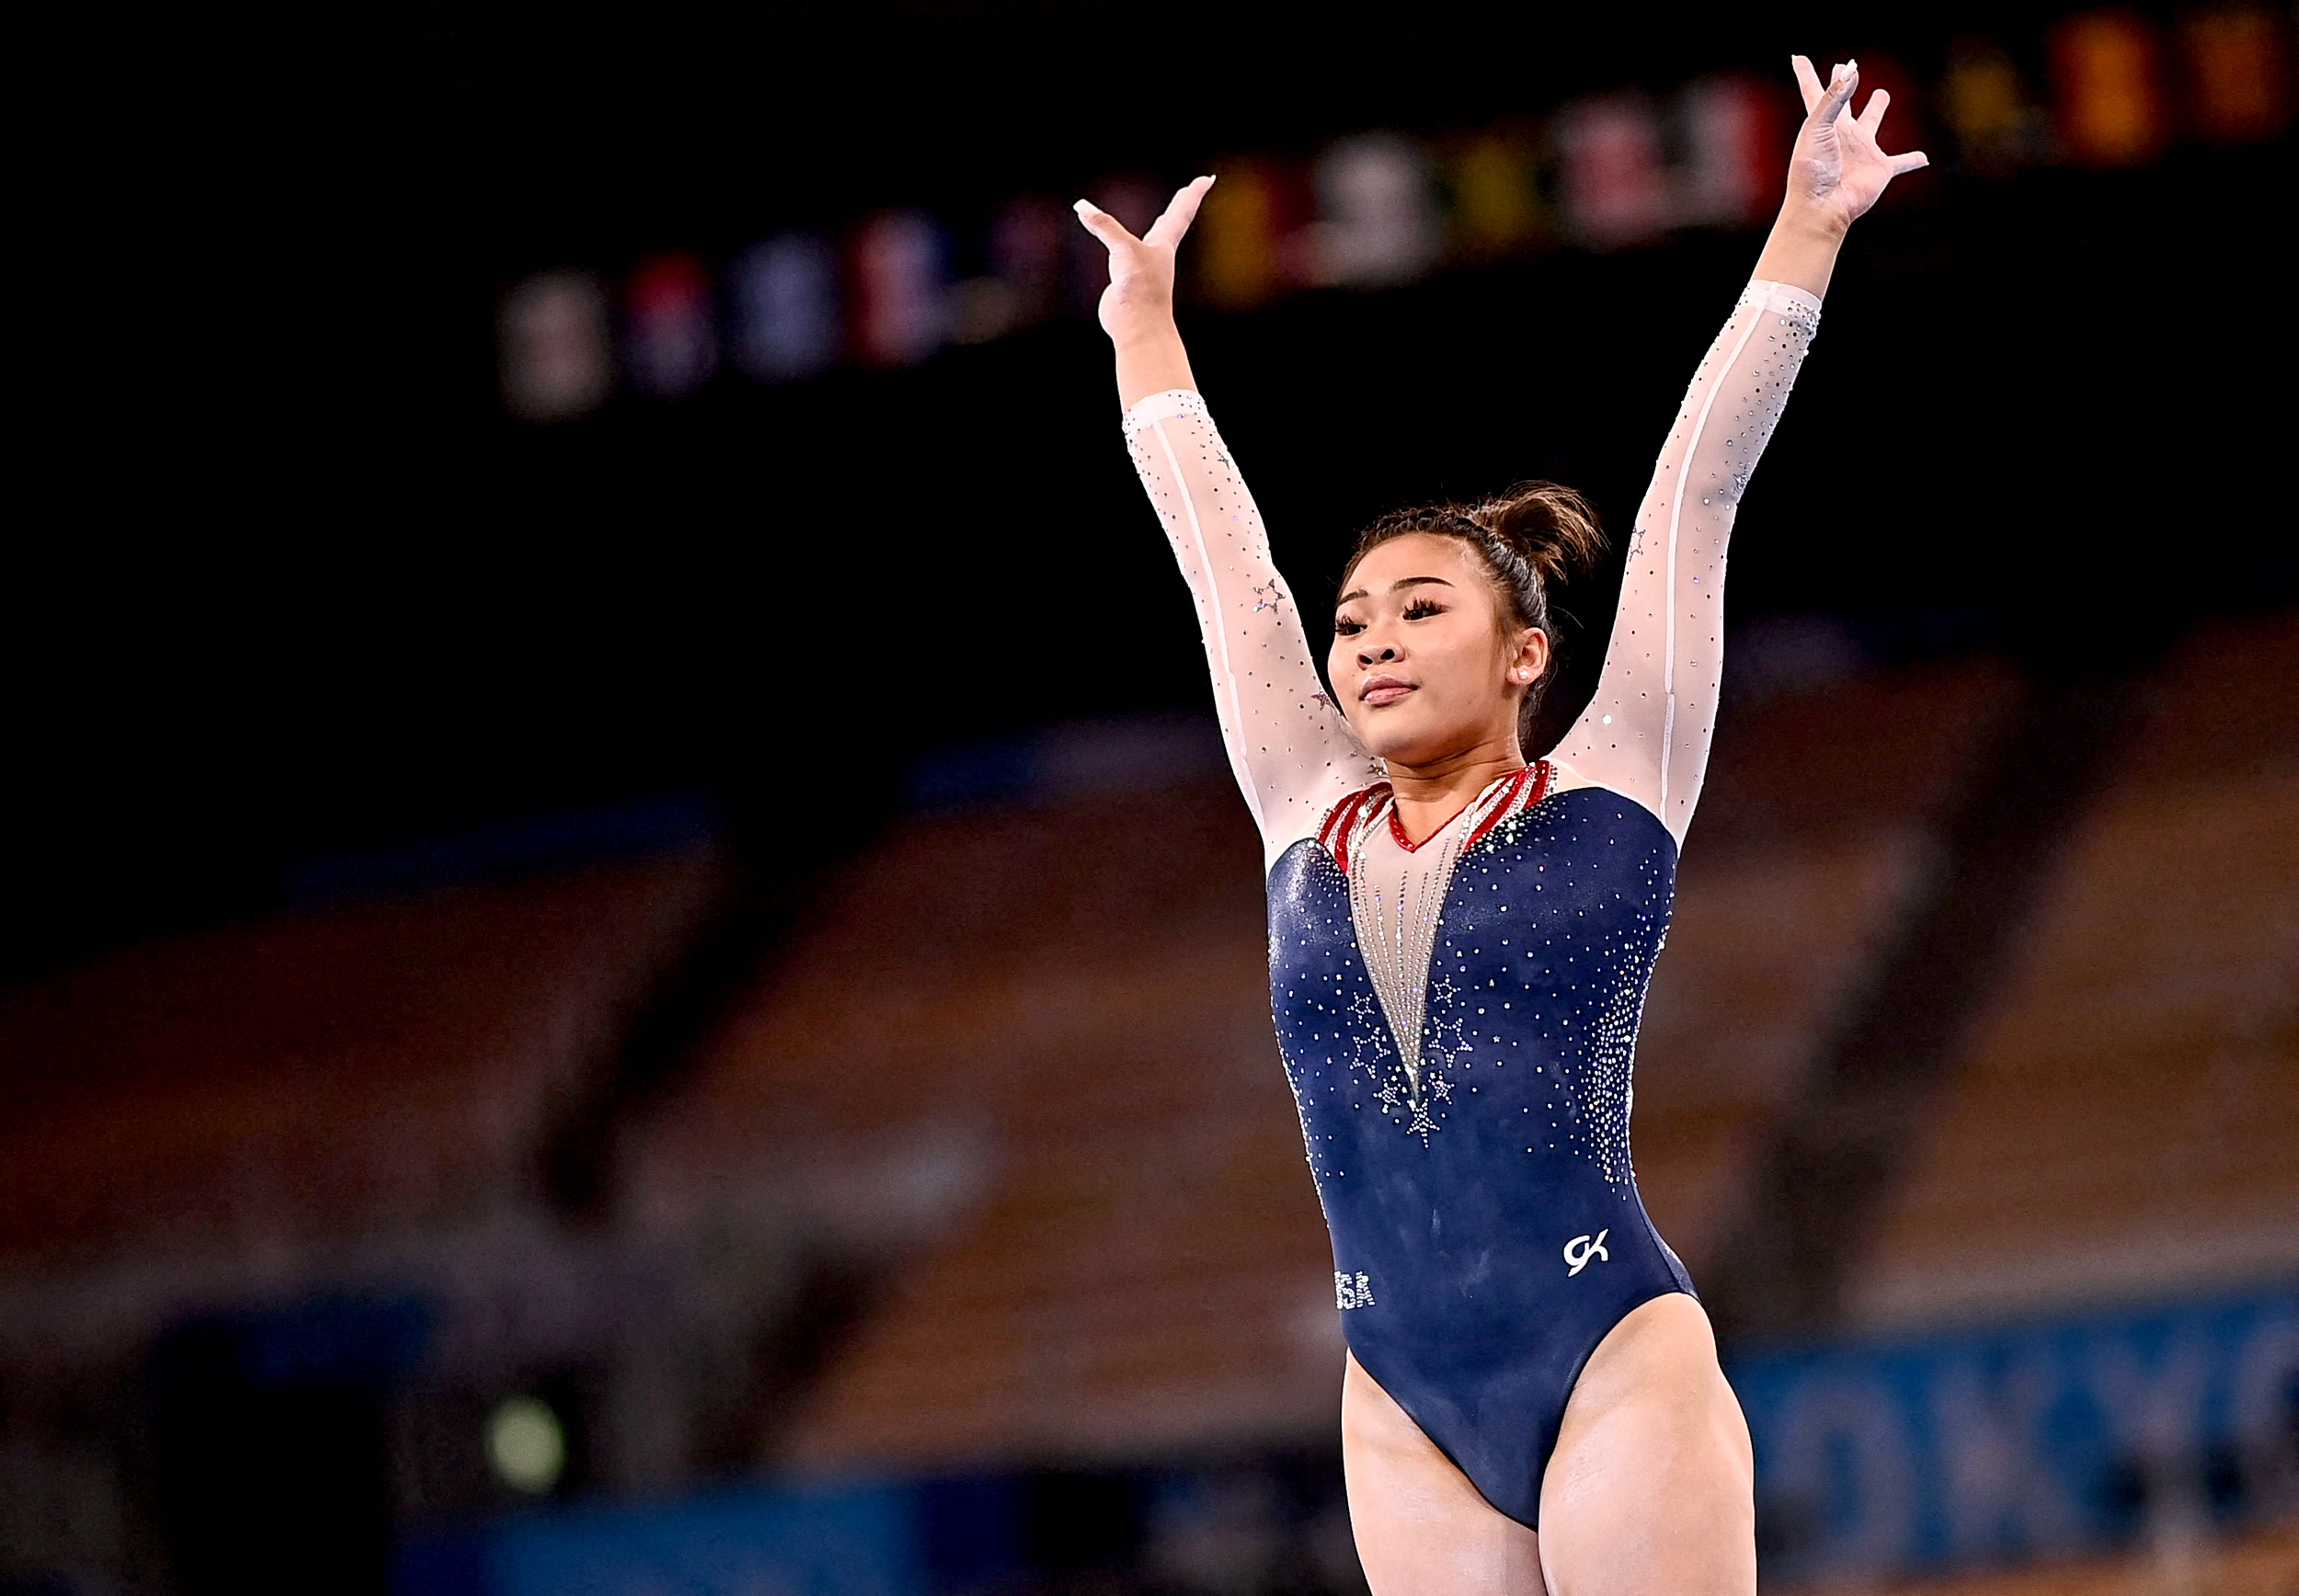 Suni Lee won gold for her community, her family and herself